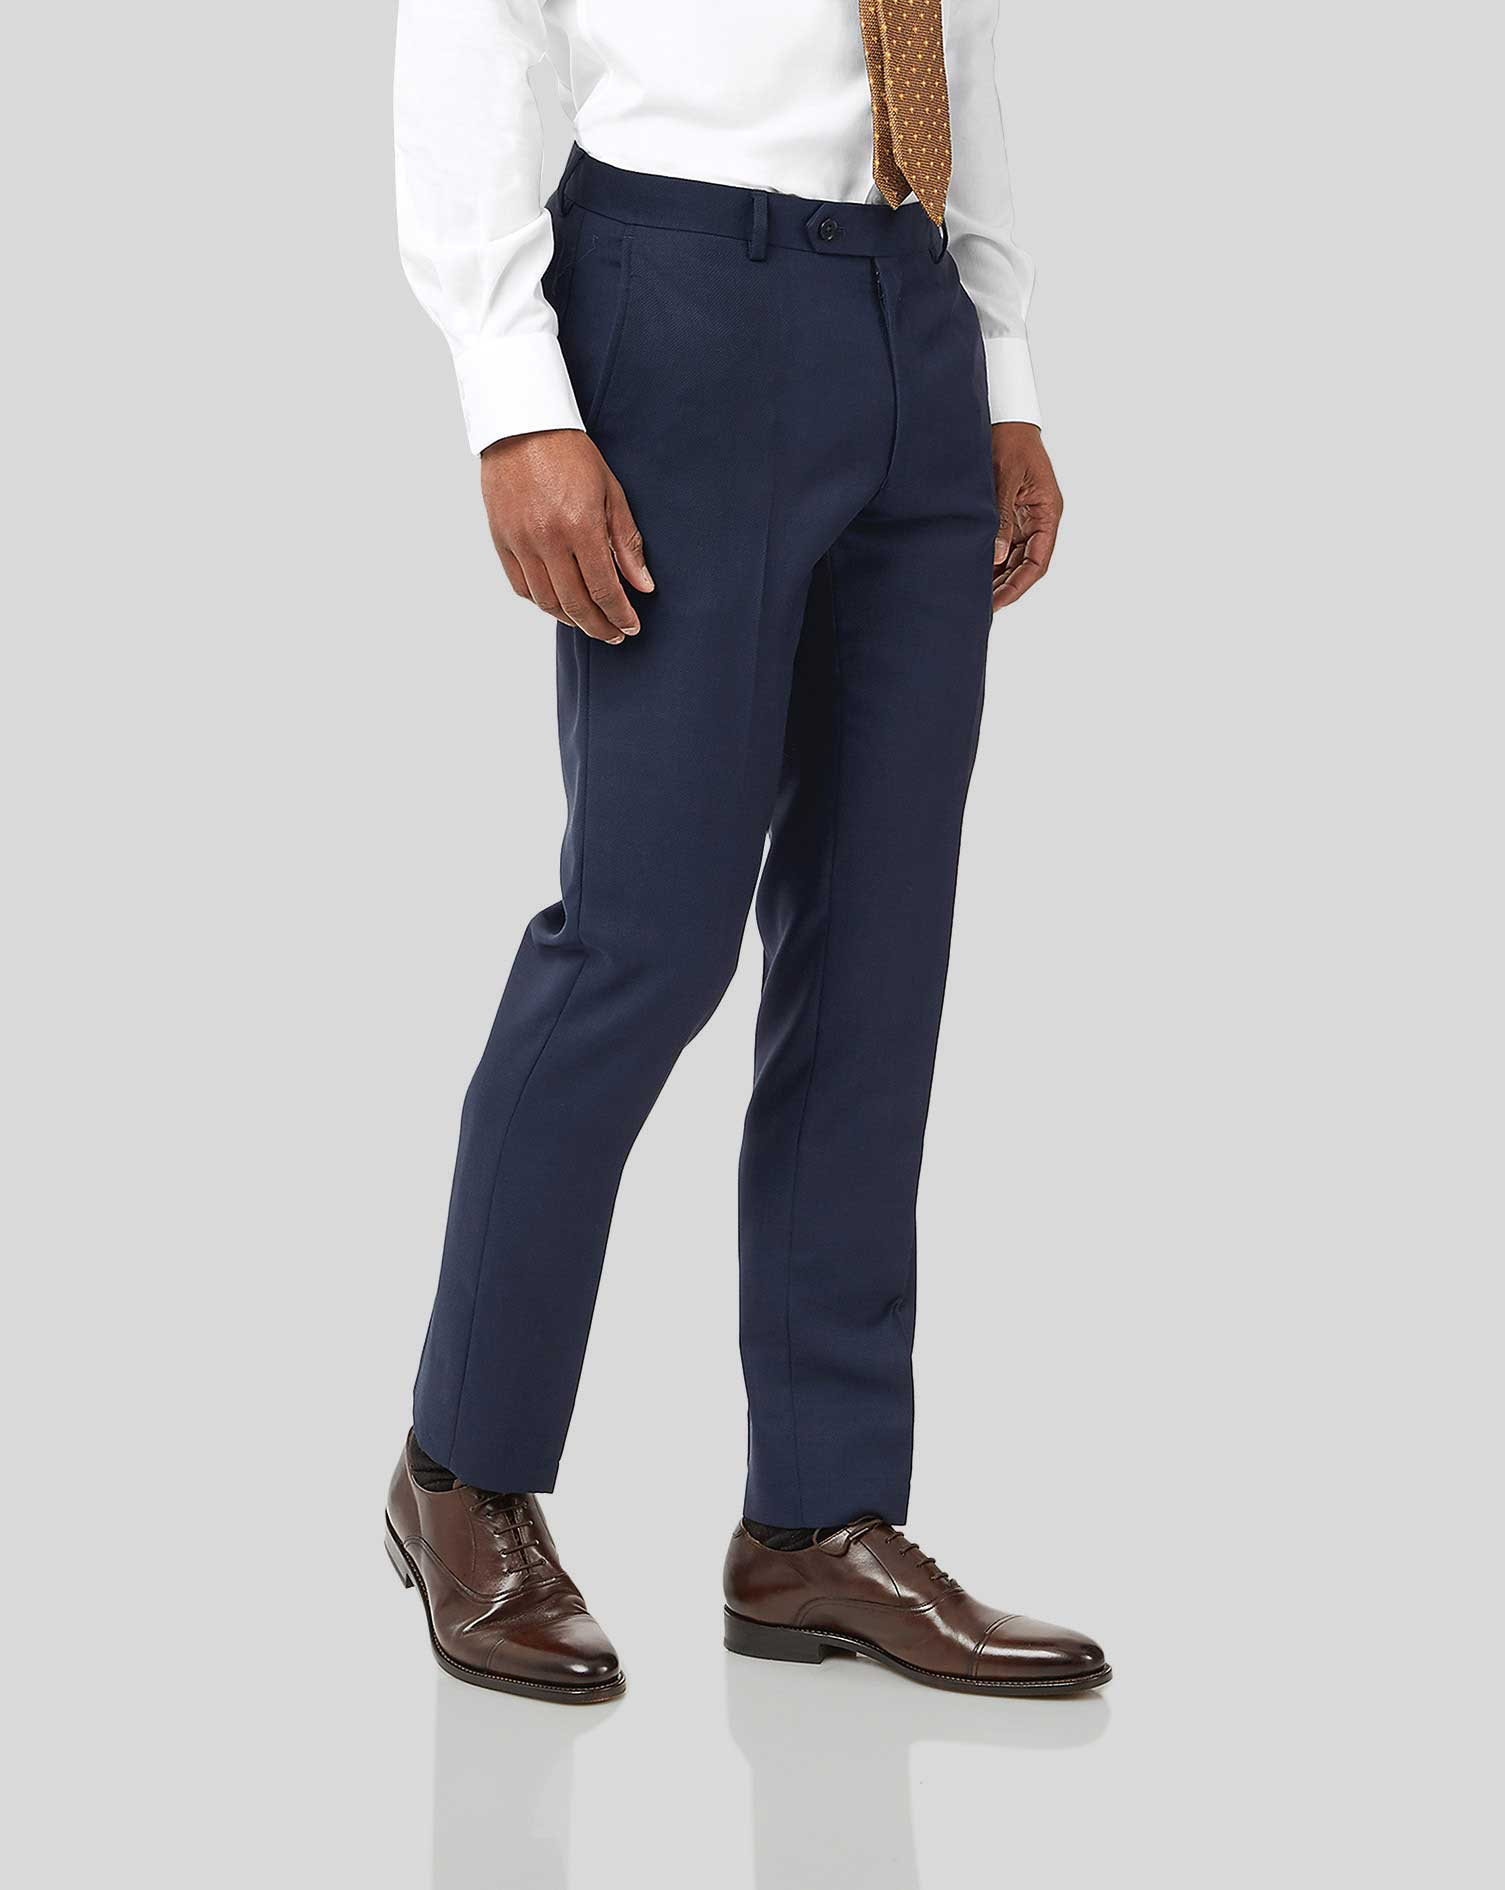 Ink blue slim fit birdseye travel suit pants